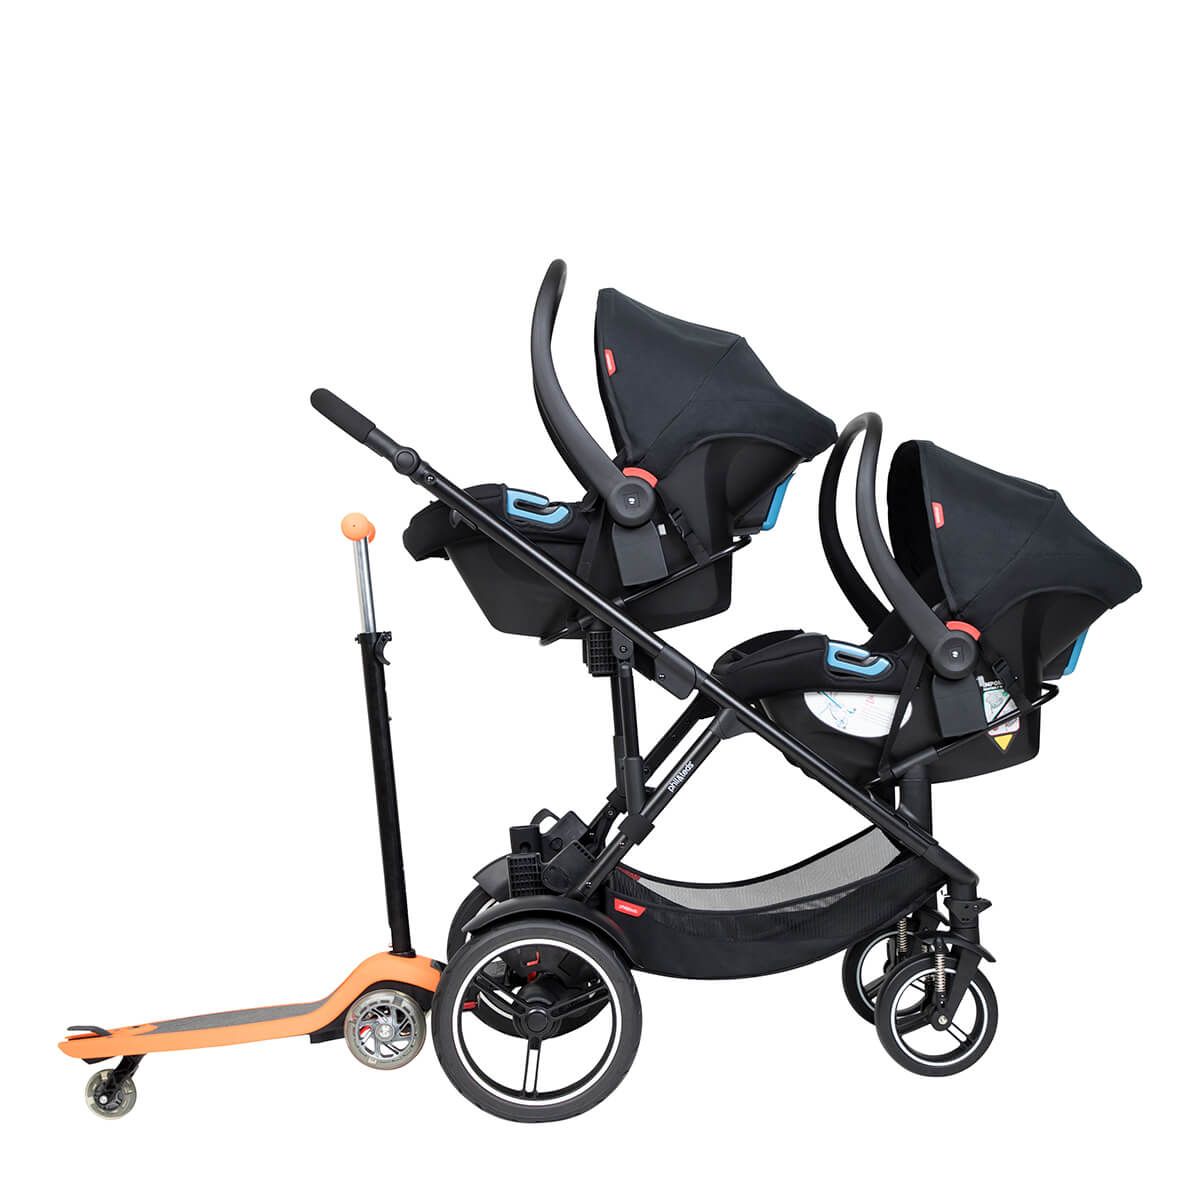 https://cdn.accentuate.io/4546159280233/19119639625833/philteds-voyager-buggy-with-double-travel-systems-and-freerider-stroller-board-in-the-rear-v1625778581833.jpg?1200x1200